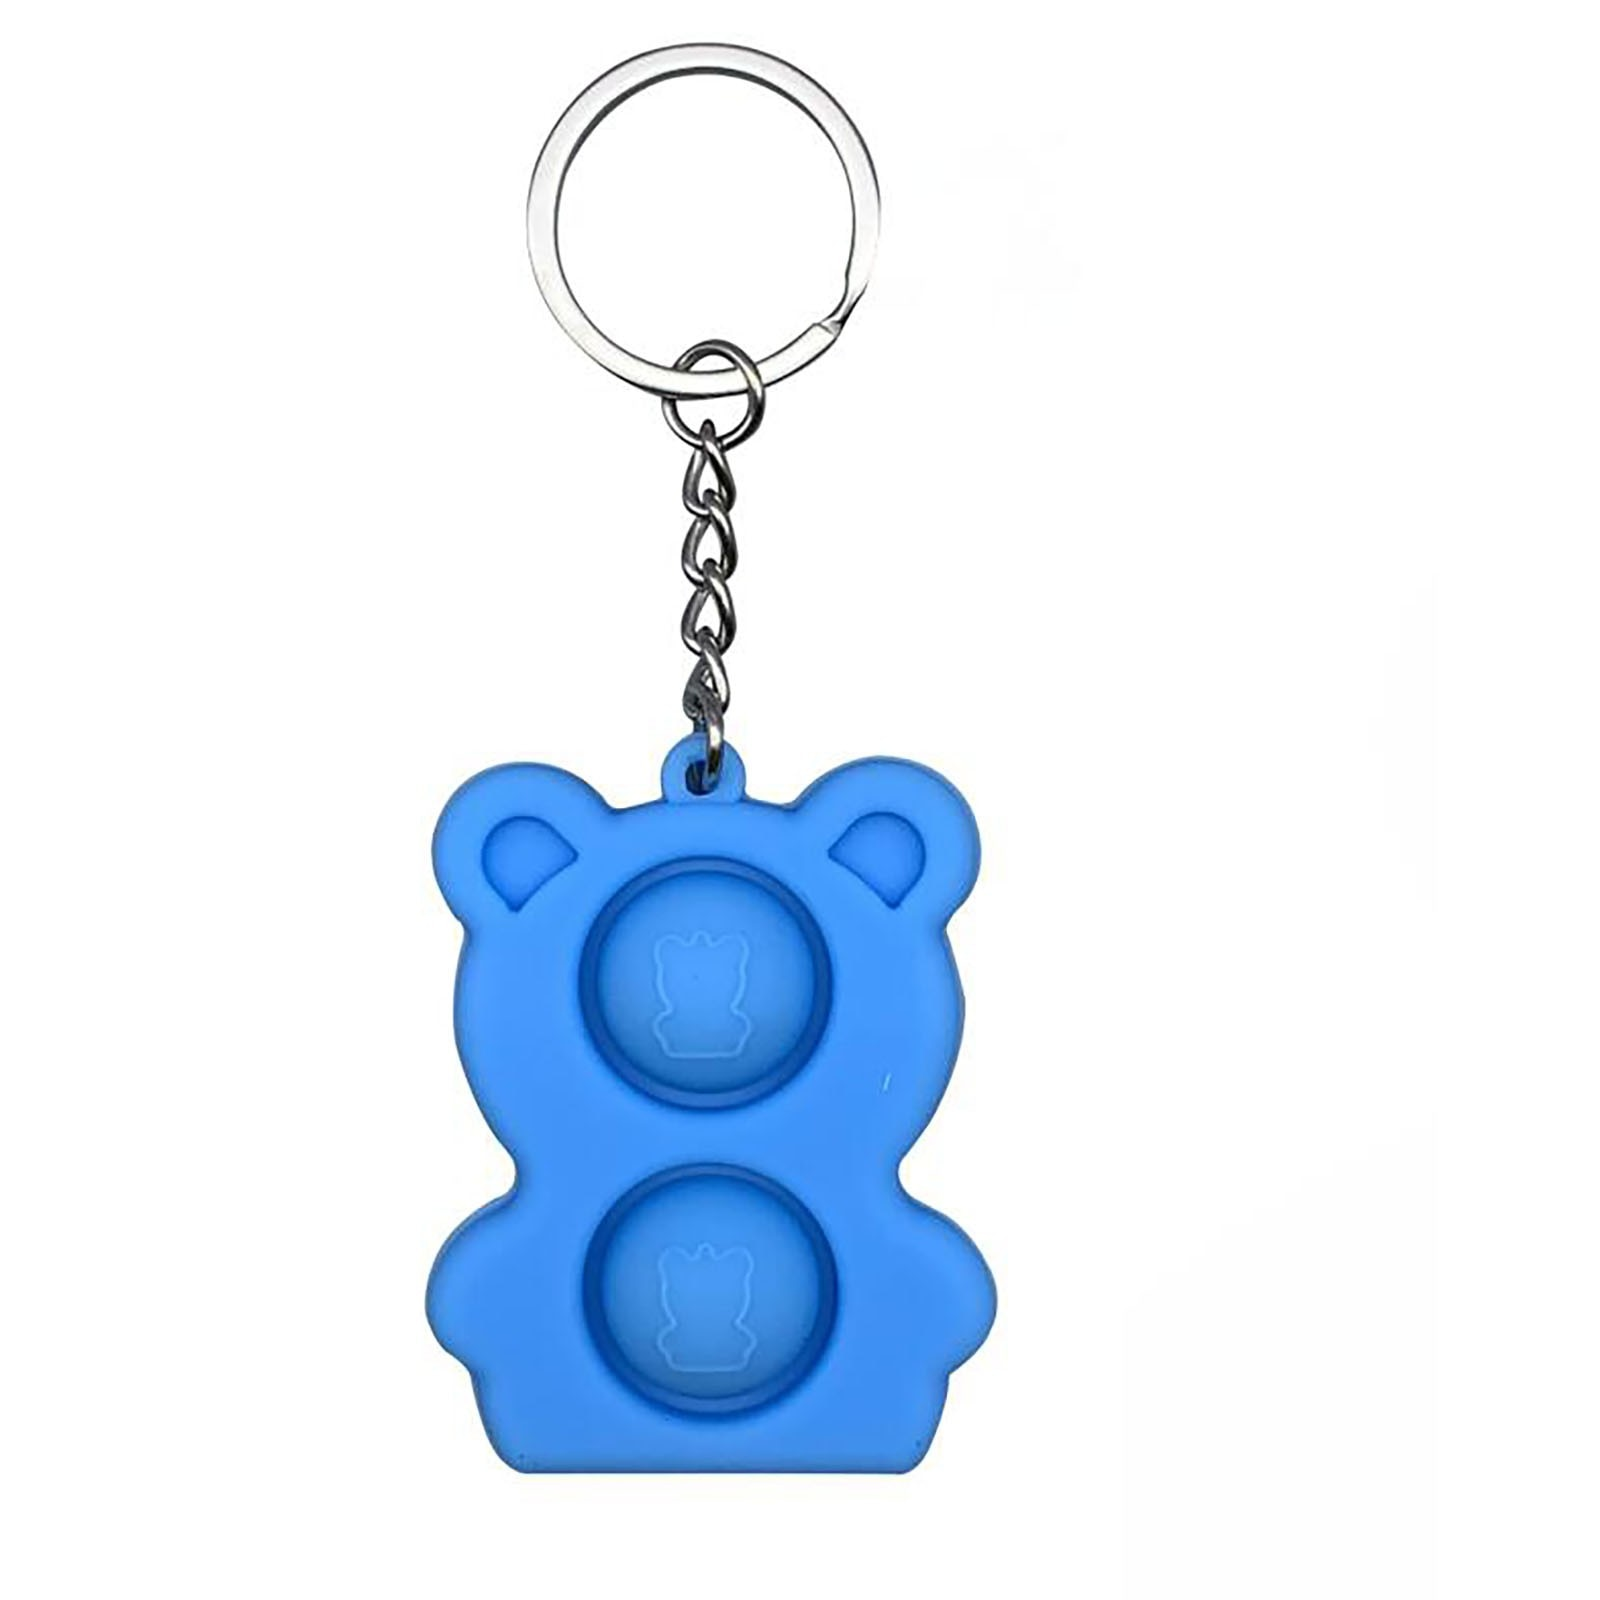 Pops It Vierkant Mini Popit Bear Keychain Push Bubble Silicone Sensory Toys Are Suitable For Relieving Stress Children Montessor